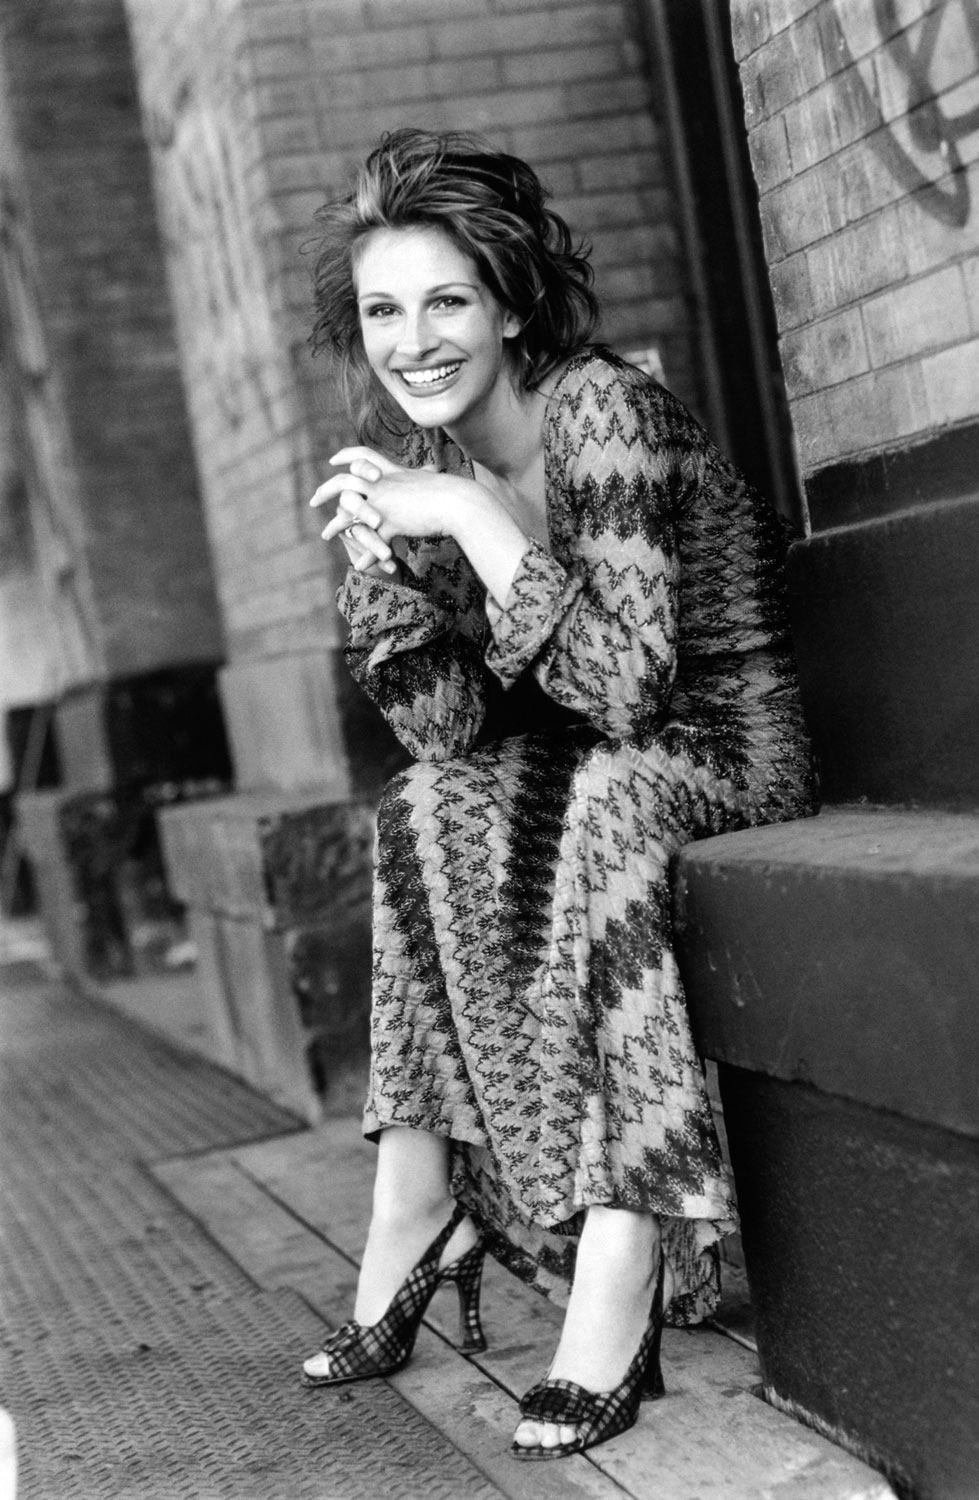 Julia Roberts 53. Top 5 best films of the actress - The